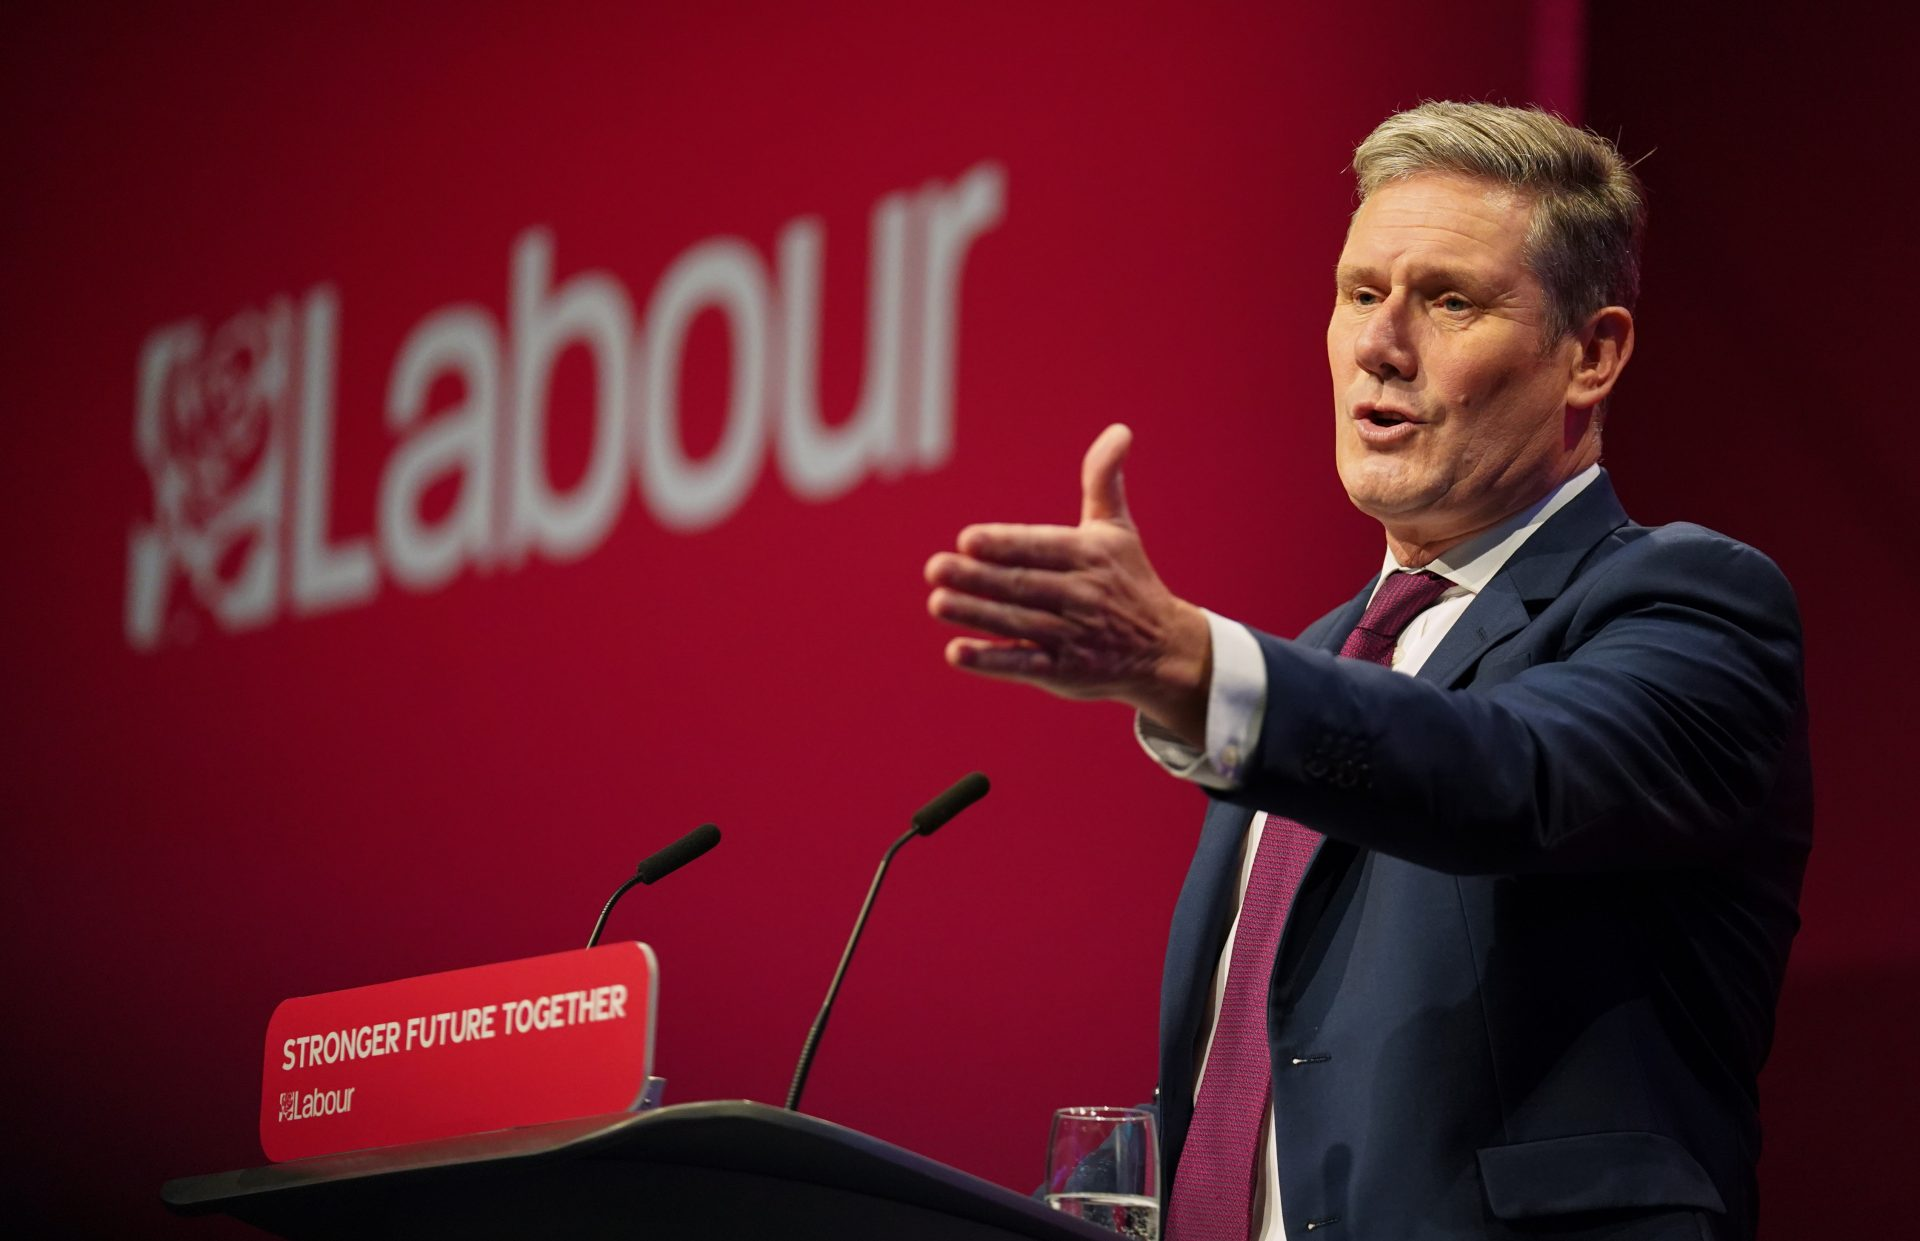 Keir Starmer claimed at conference he wanted to see Brexit work. Photograph: PA.